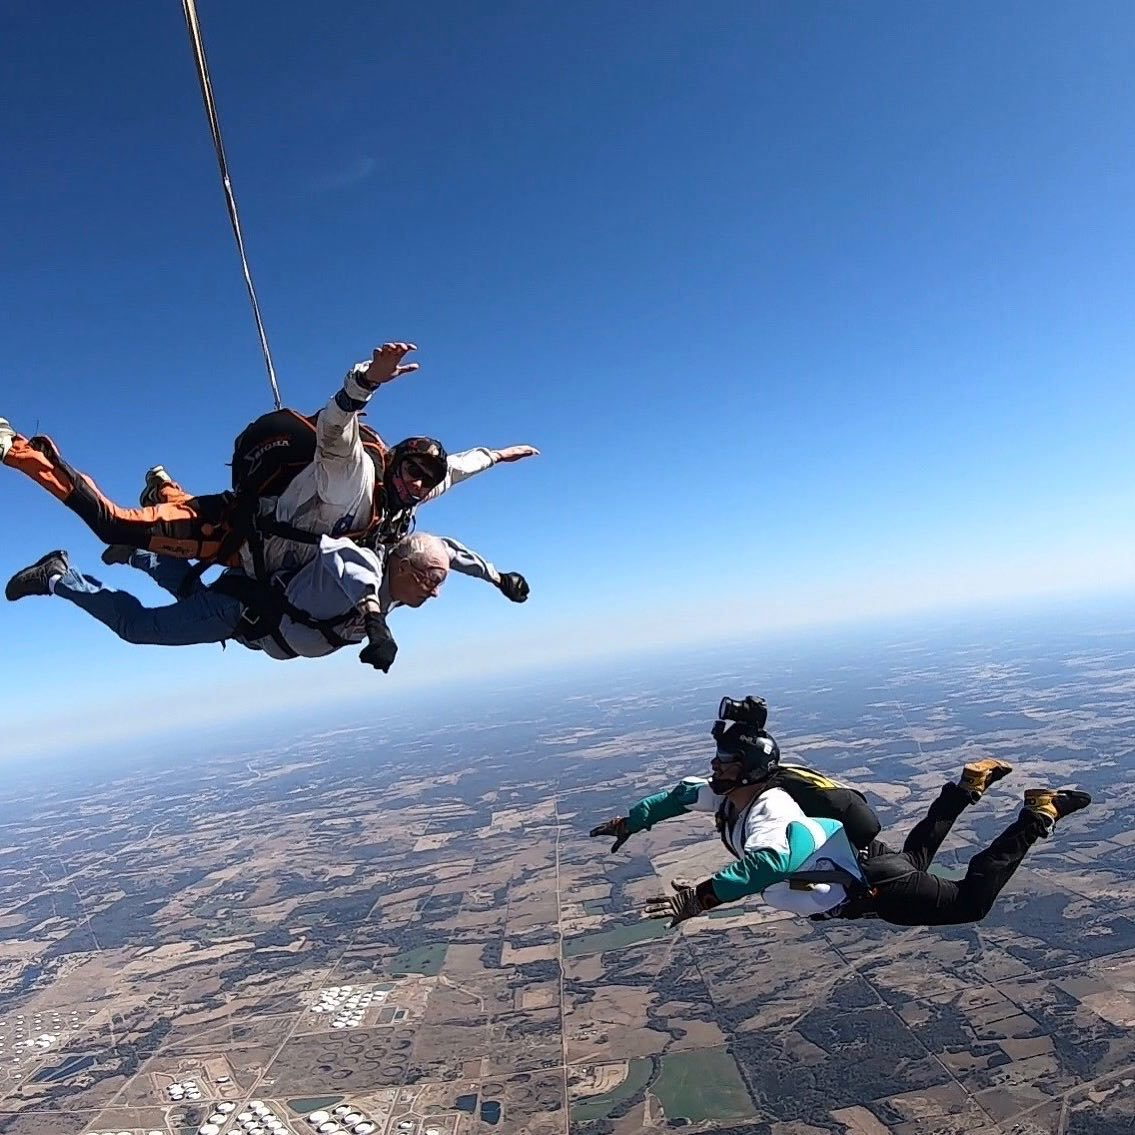 Do You Have To Be Physically Fit To Skydive?